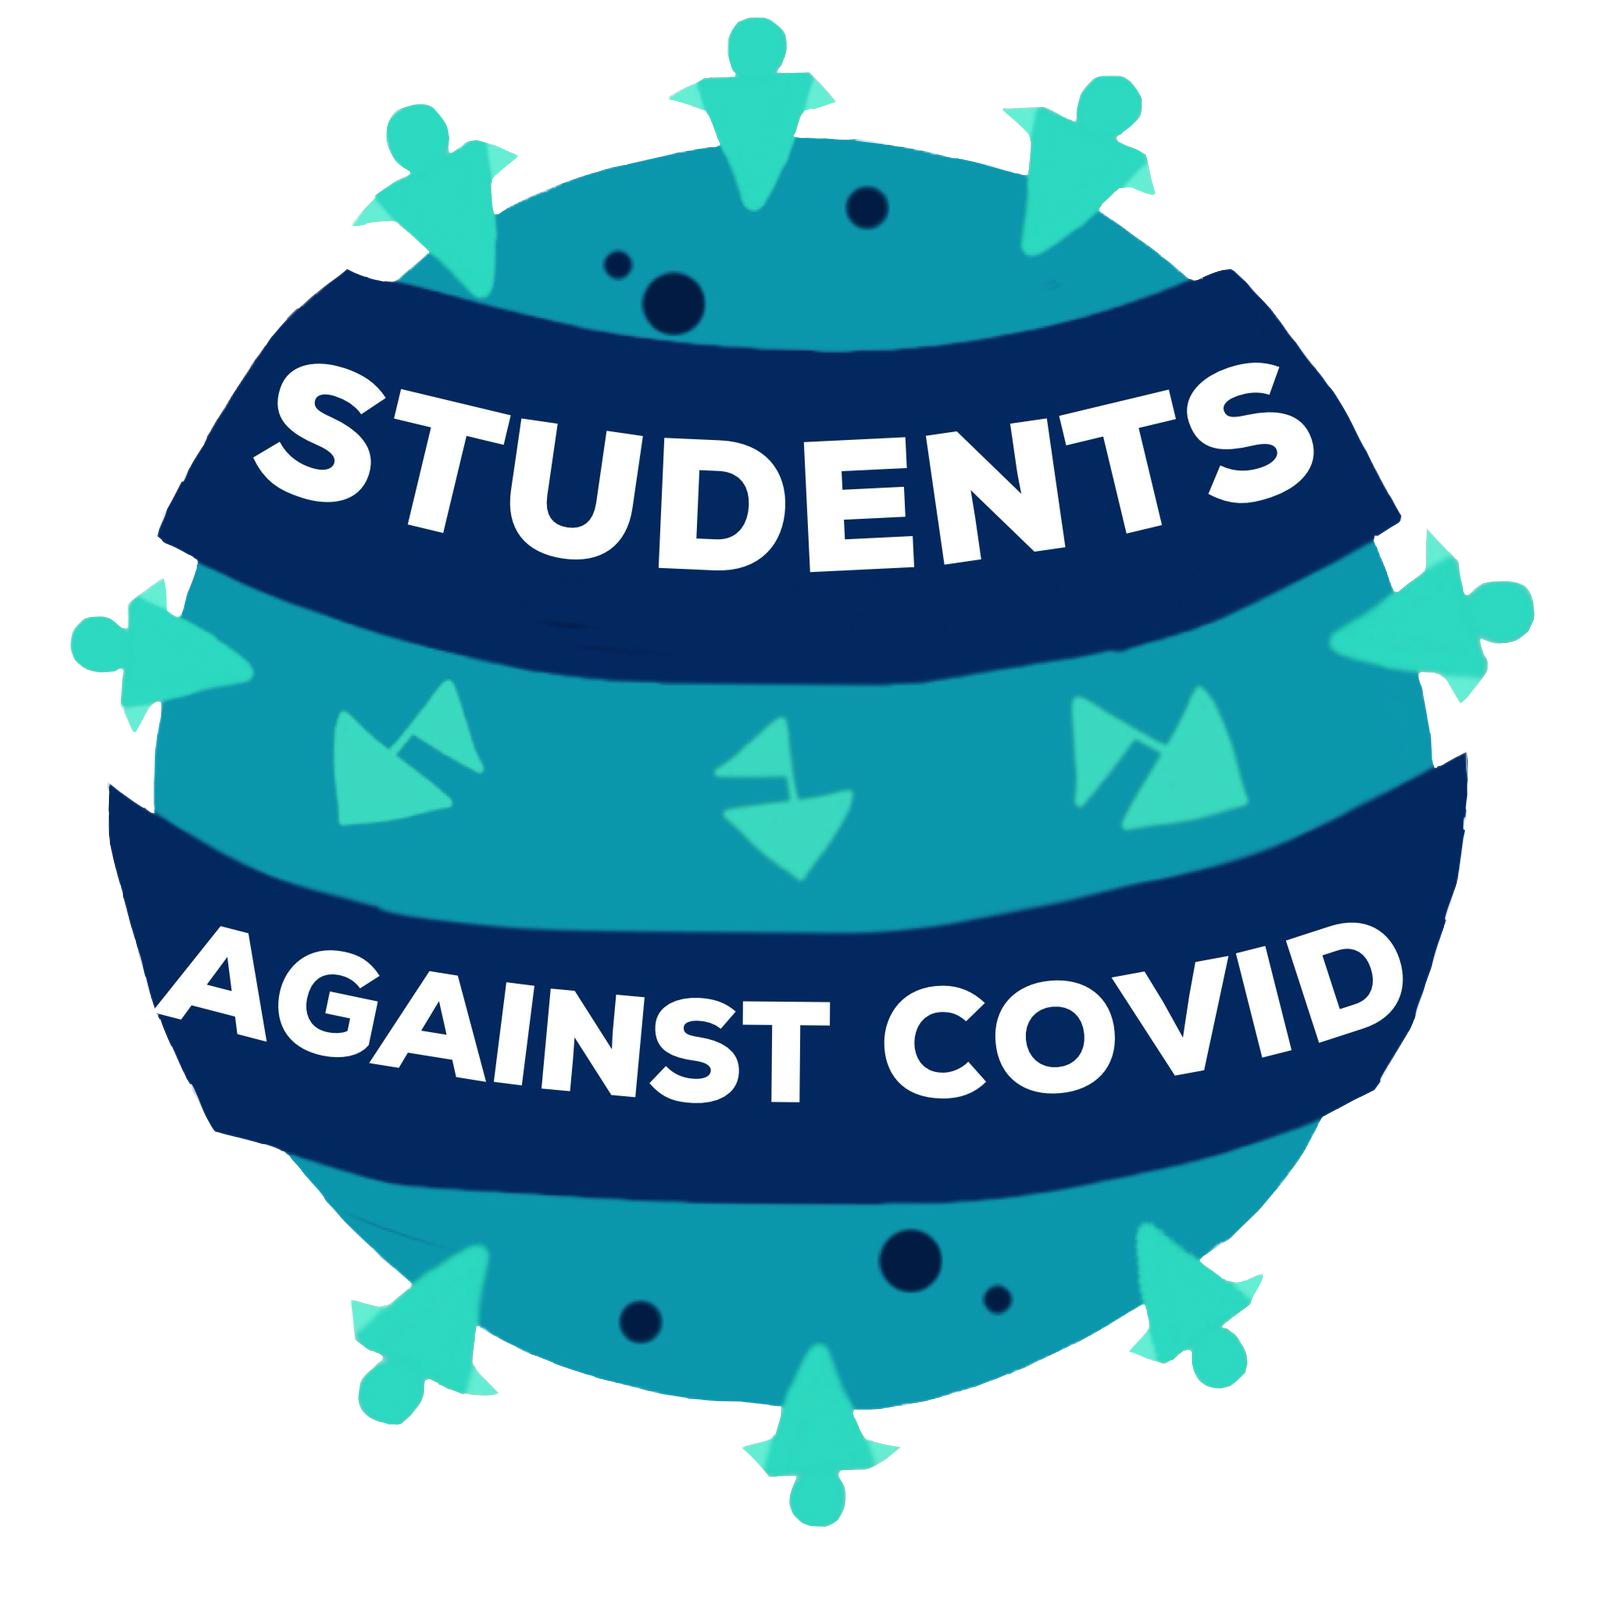 Students against COVID